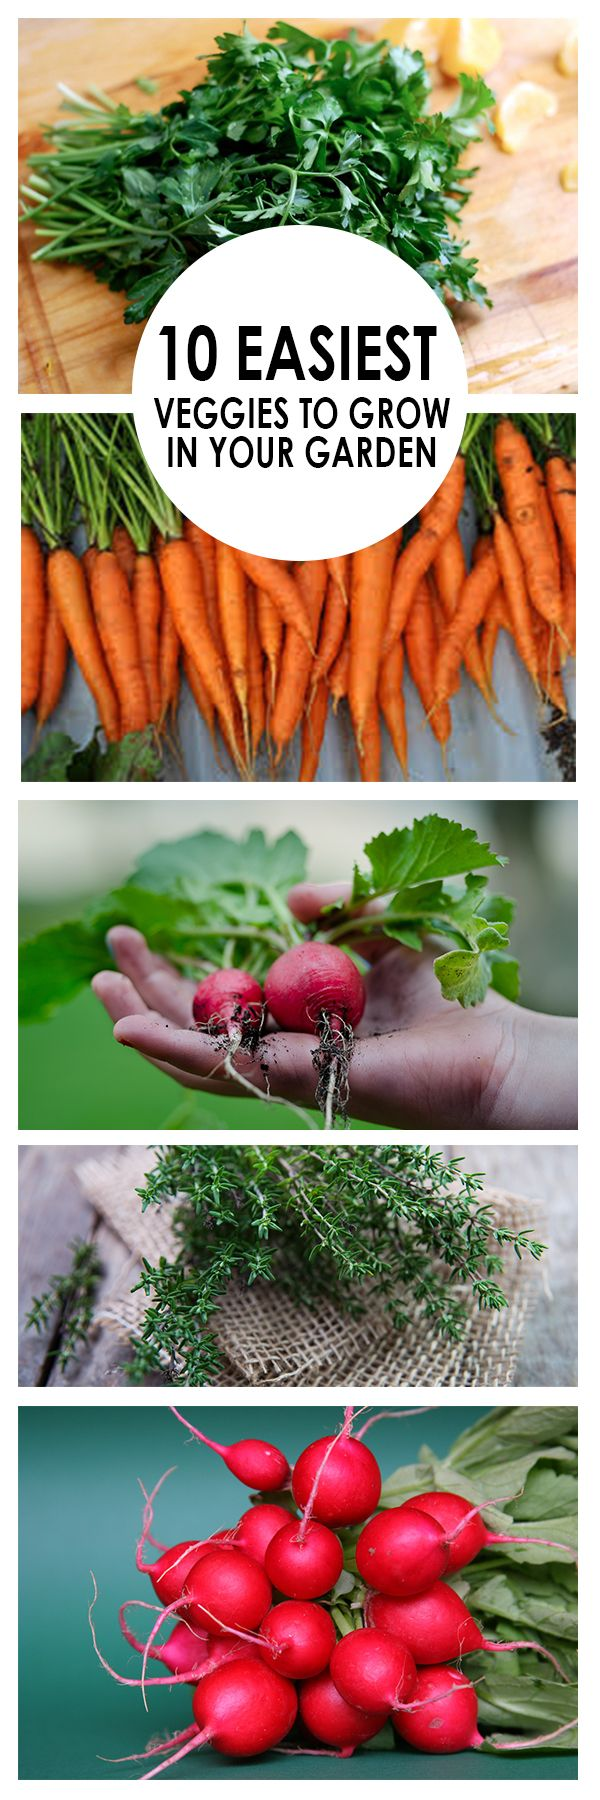 Vegetable gardening, easy vegetable gardening, gardening, gardening tips and tricks, easy veggies to grow, gardening hacks, popular pin, gardening for beginners.